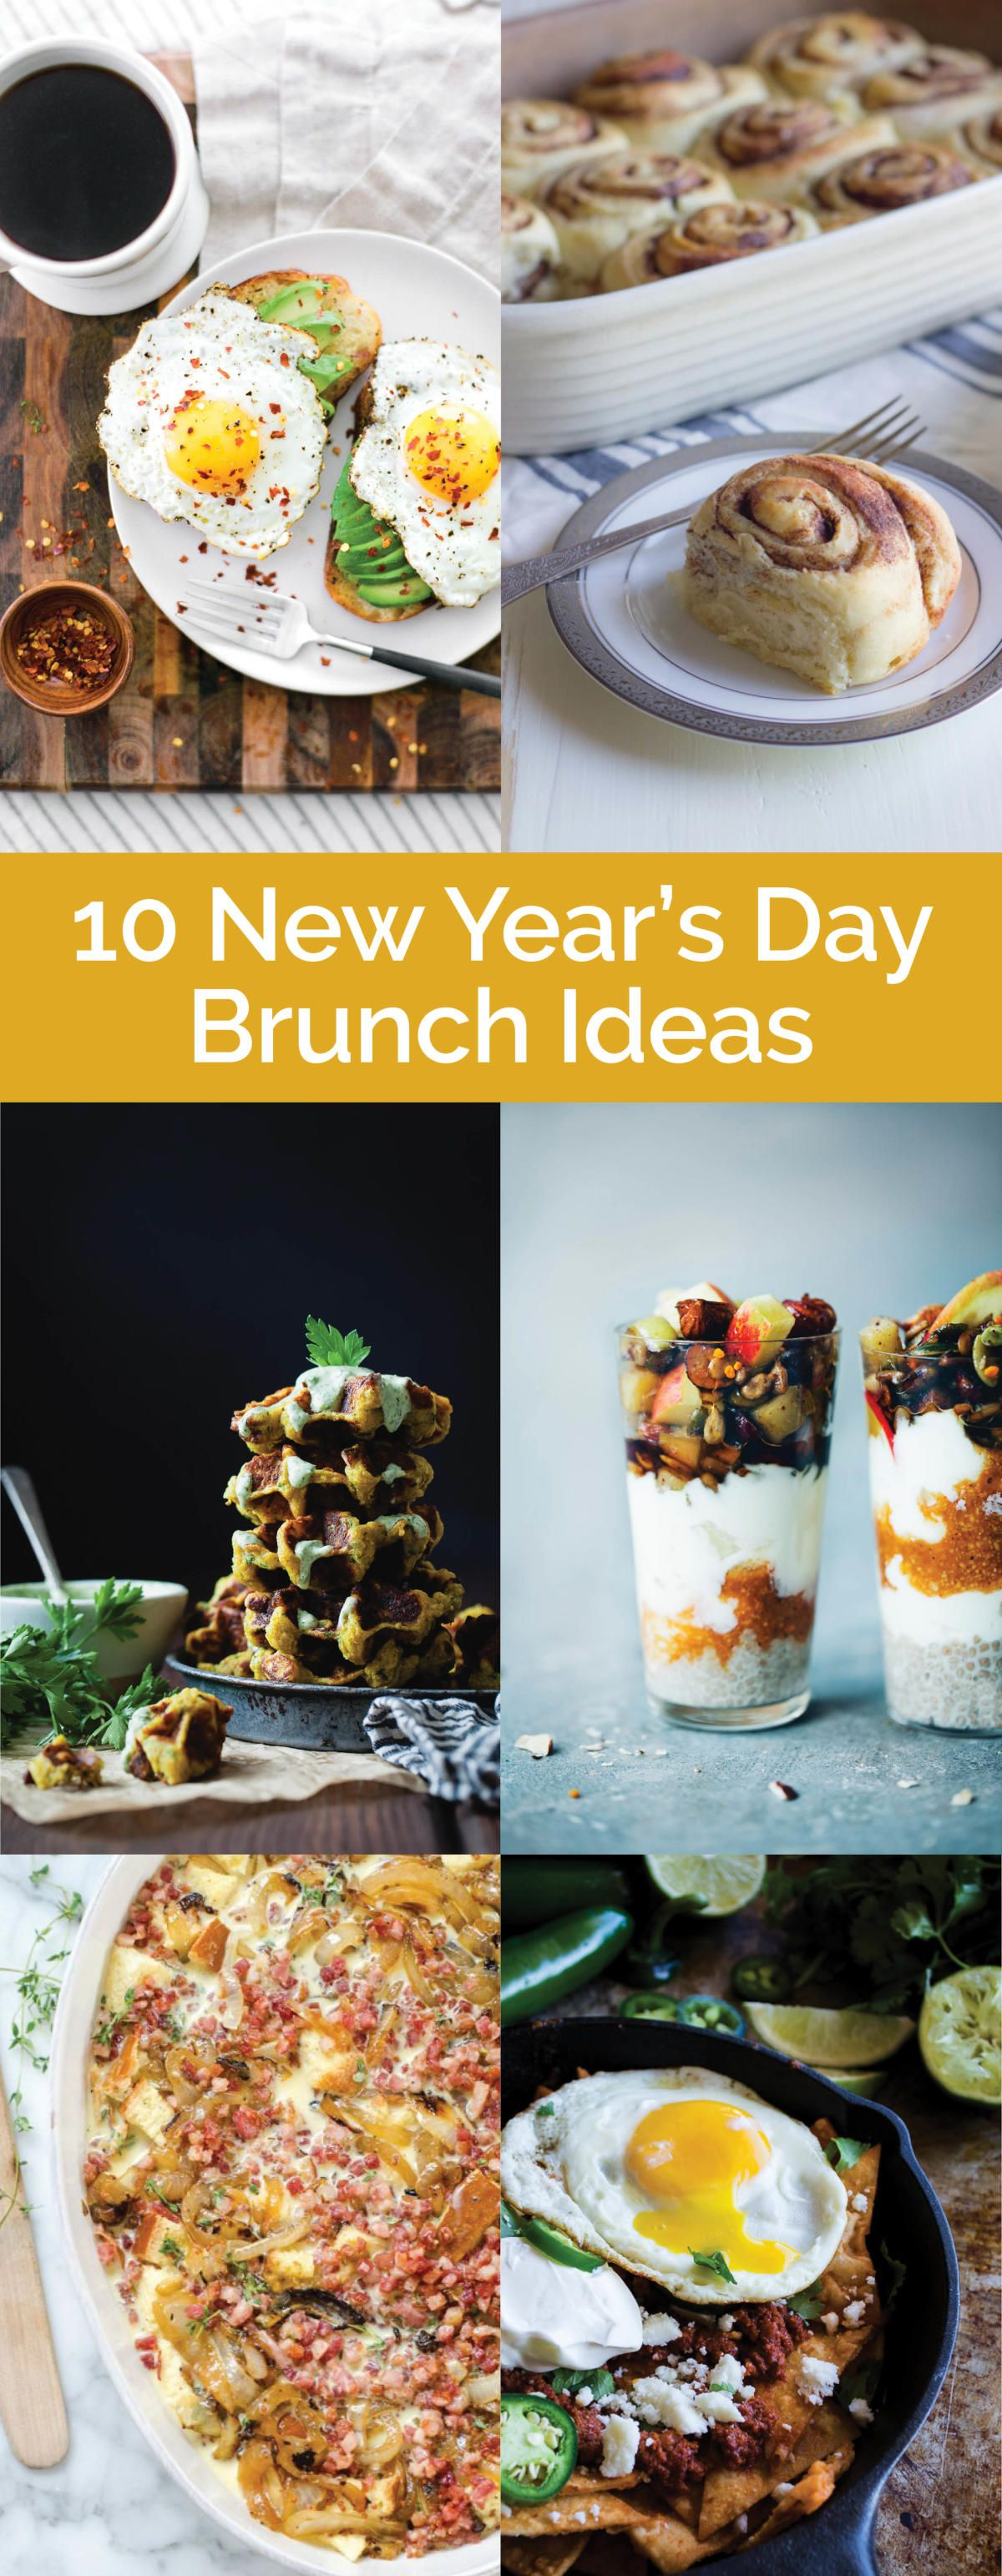 10 Easy Recipes for New Year's Day Brunch Make ahead